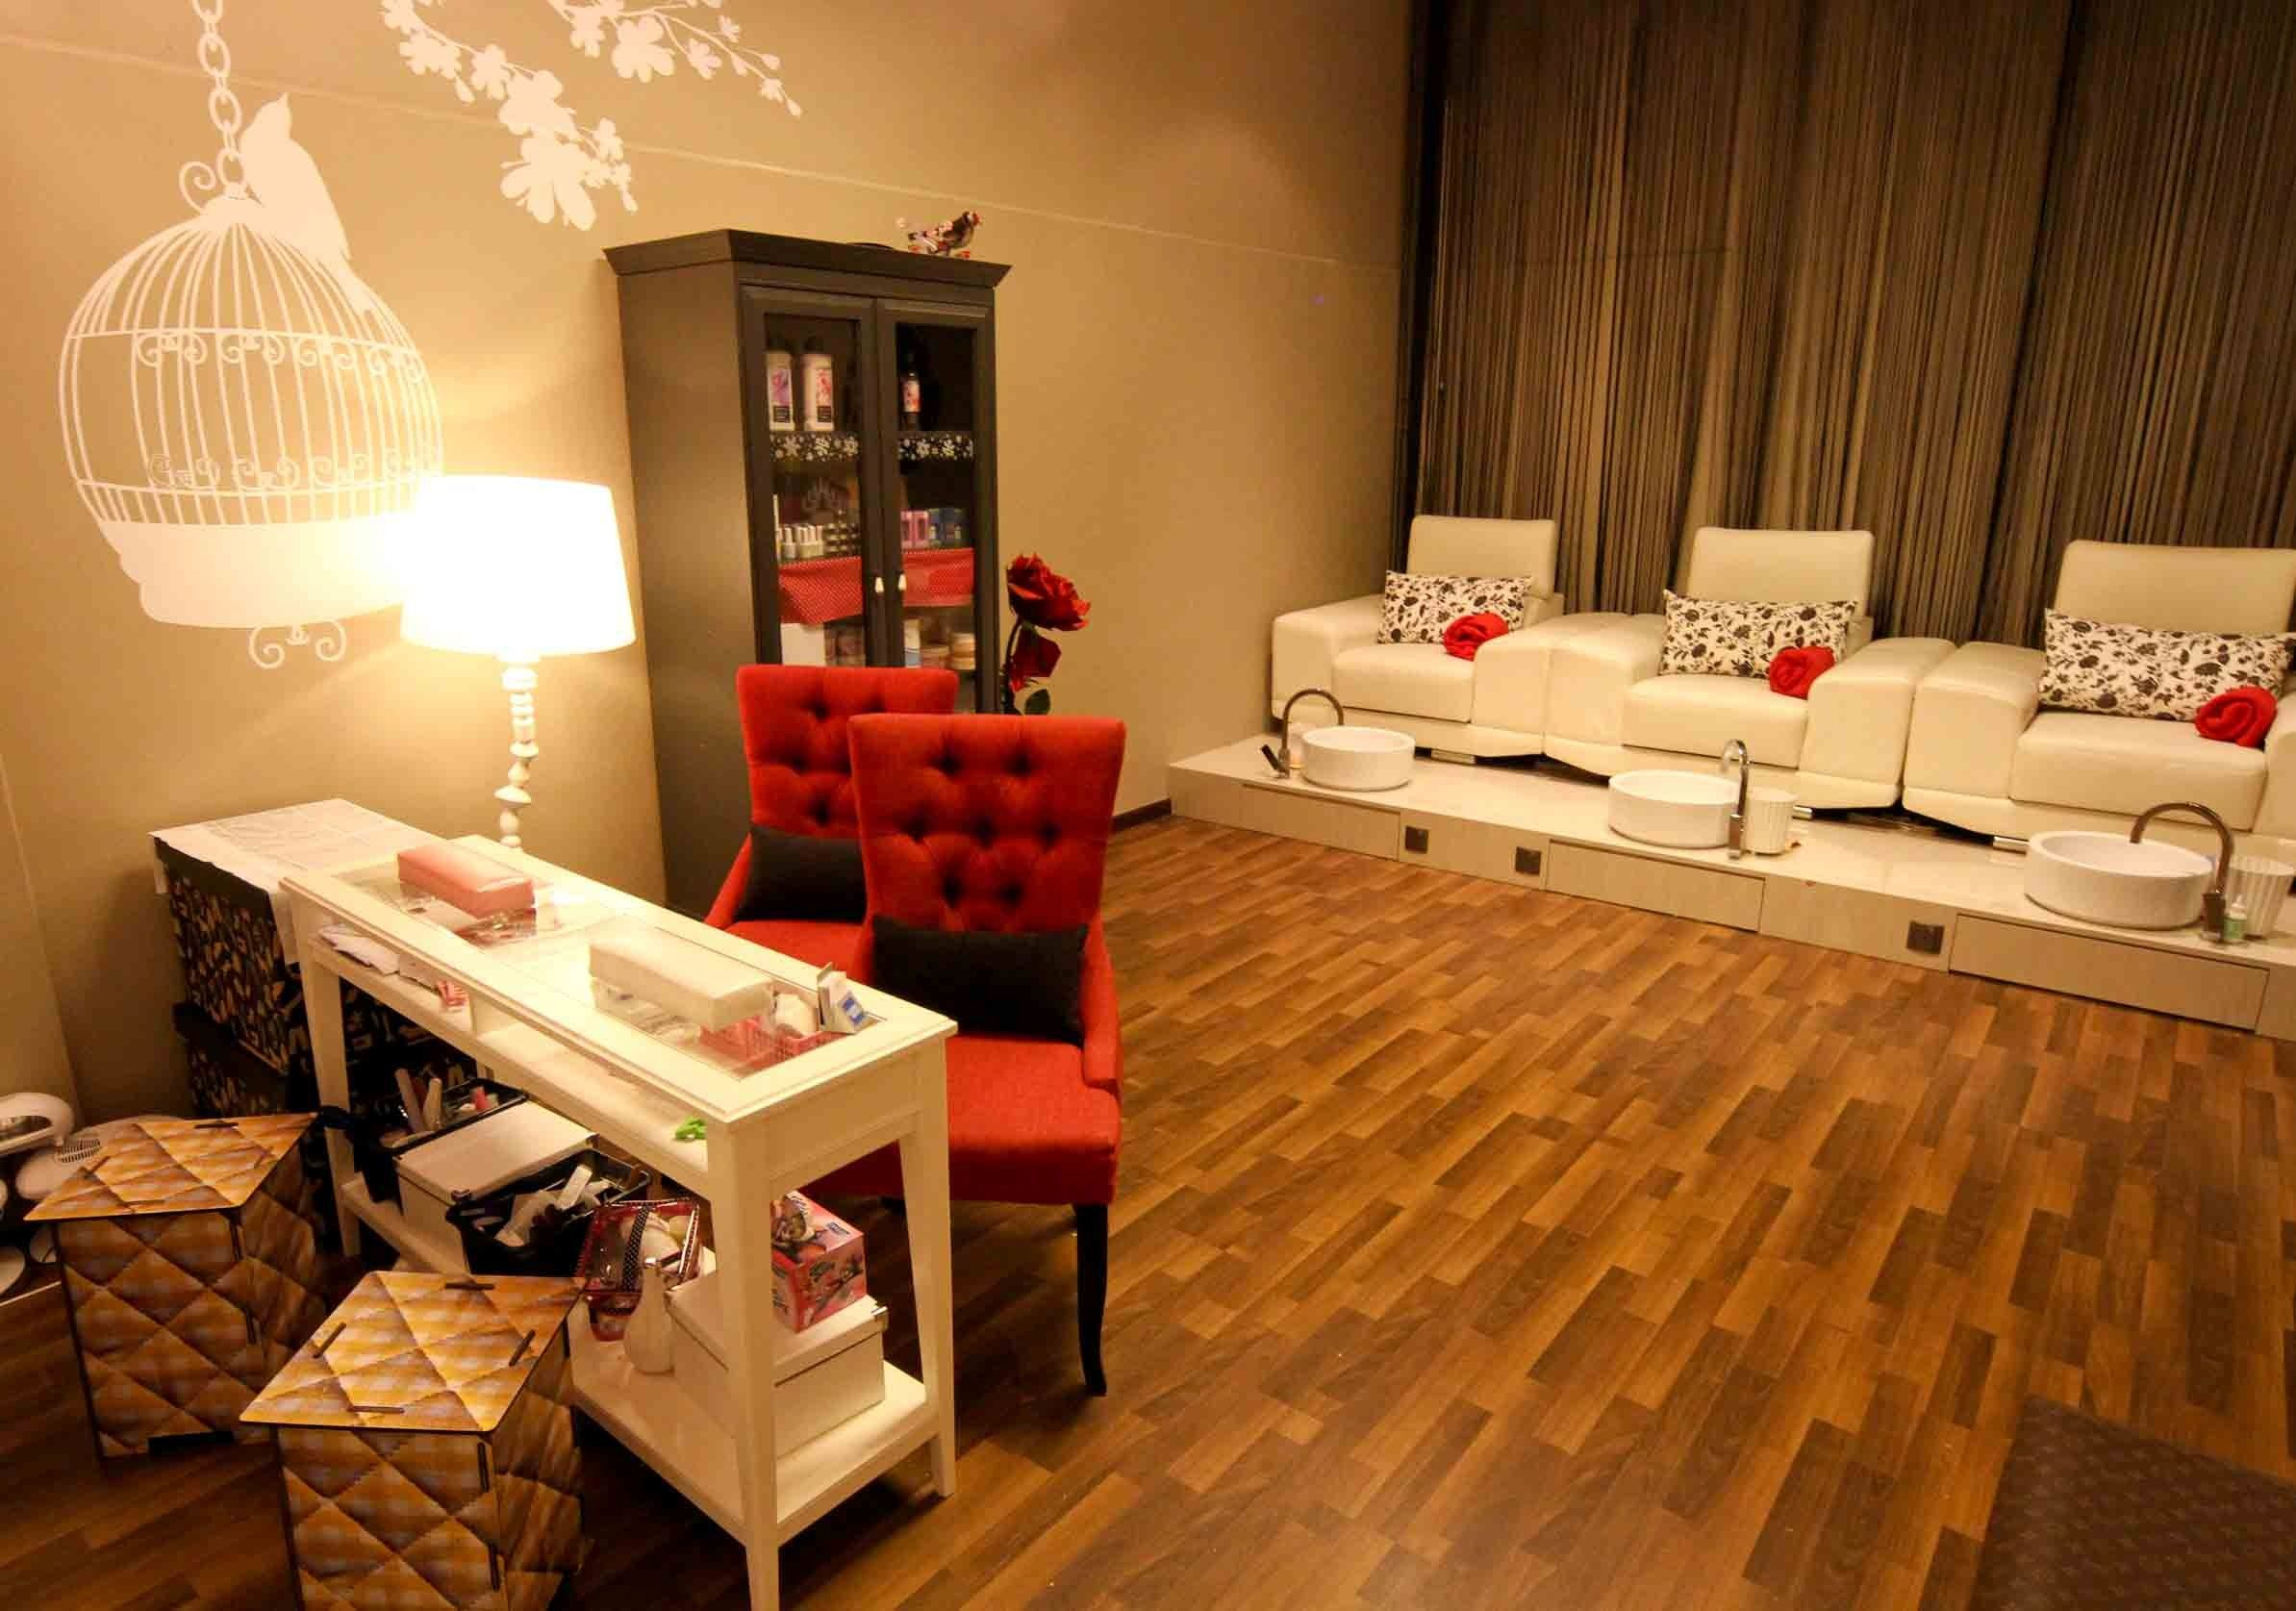 Nail salon decor 23 for classic manicure and pedicure at envy nail lounge - Decoration mural salon ...